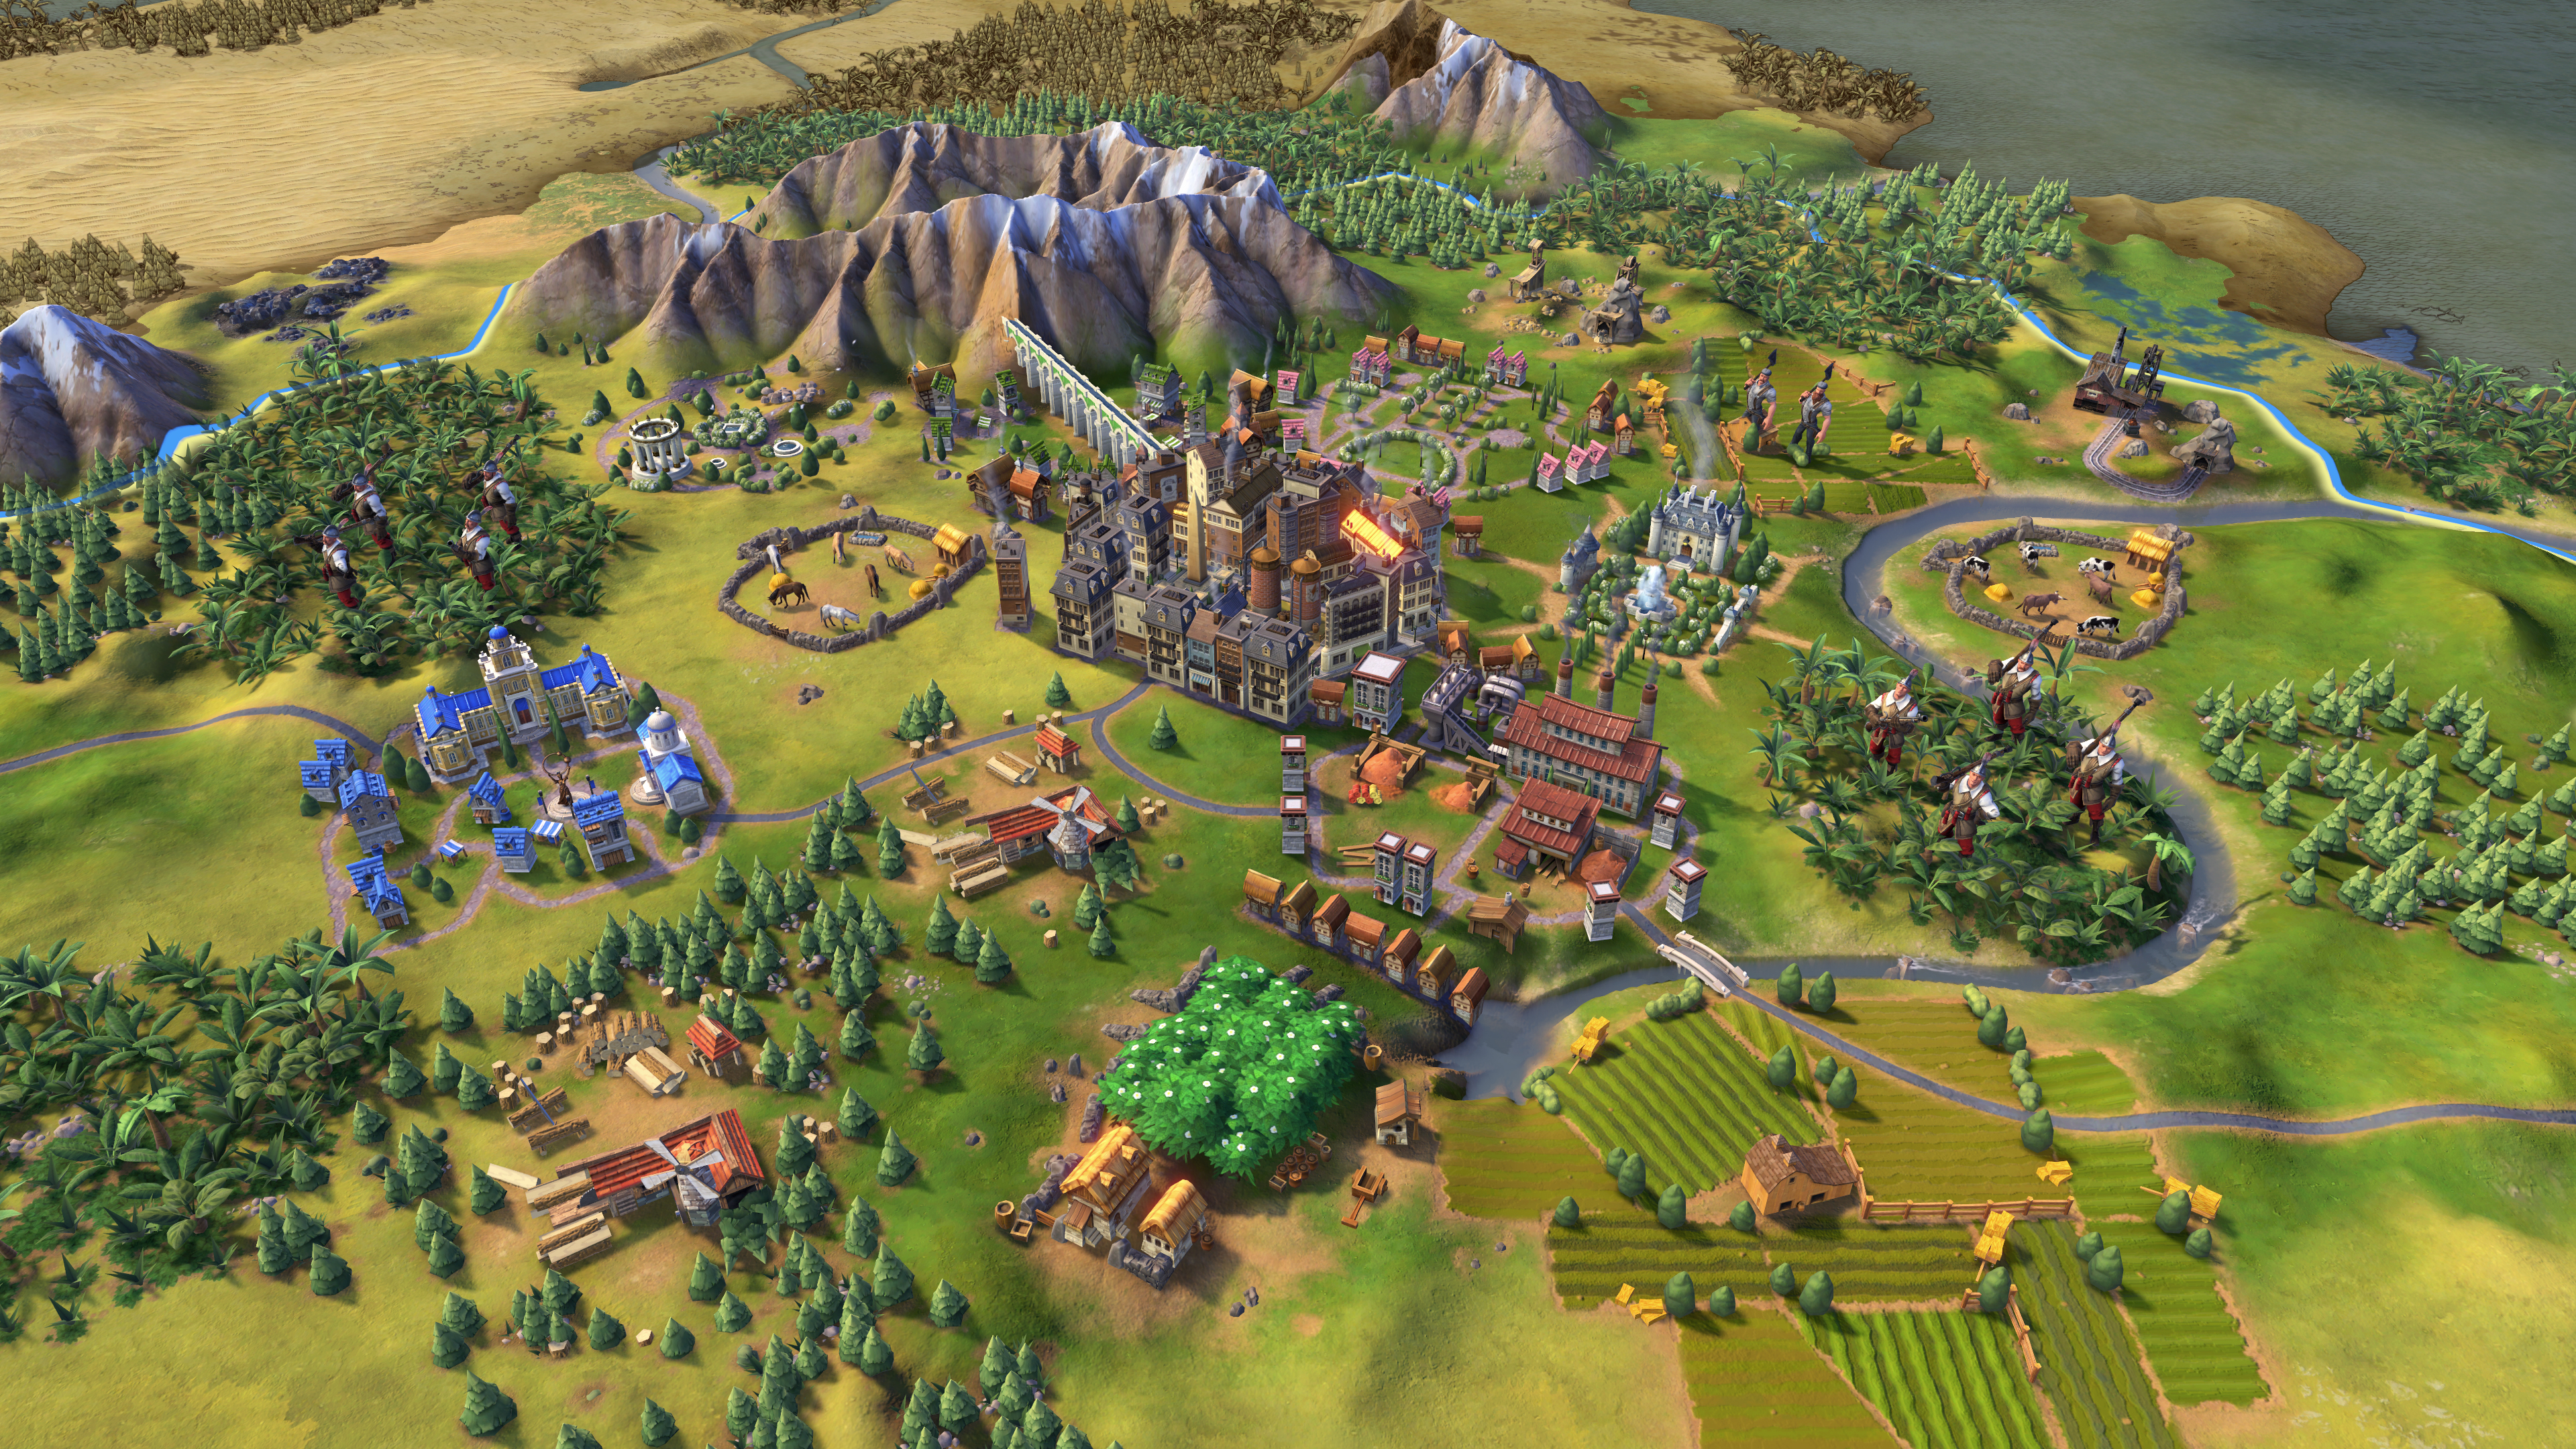 Amazon com: Sid Meier's Civilization VI: Gathering Storm